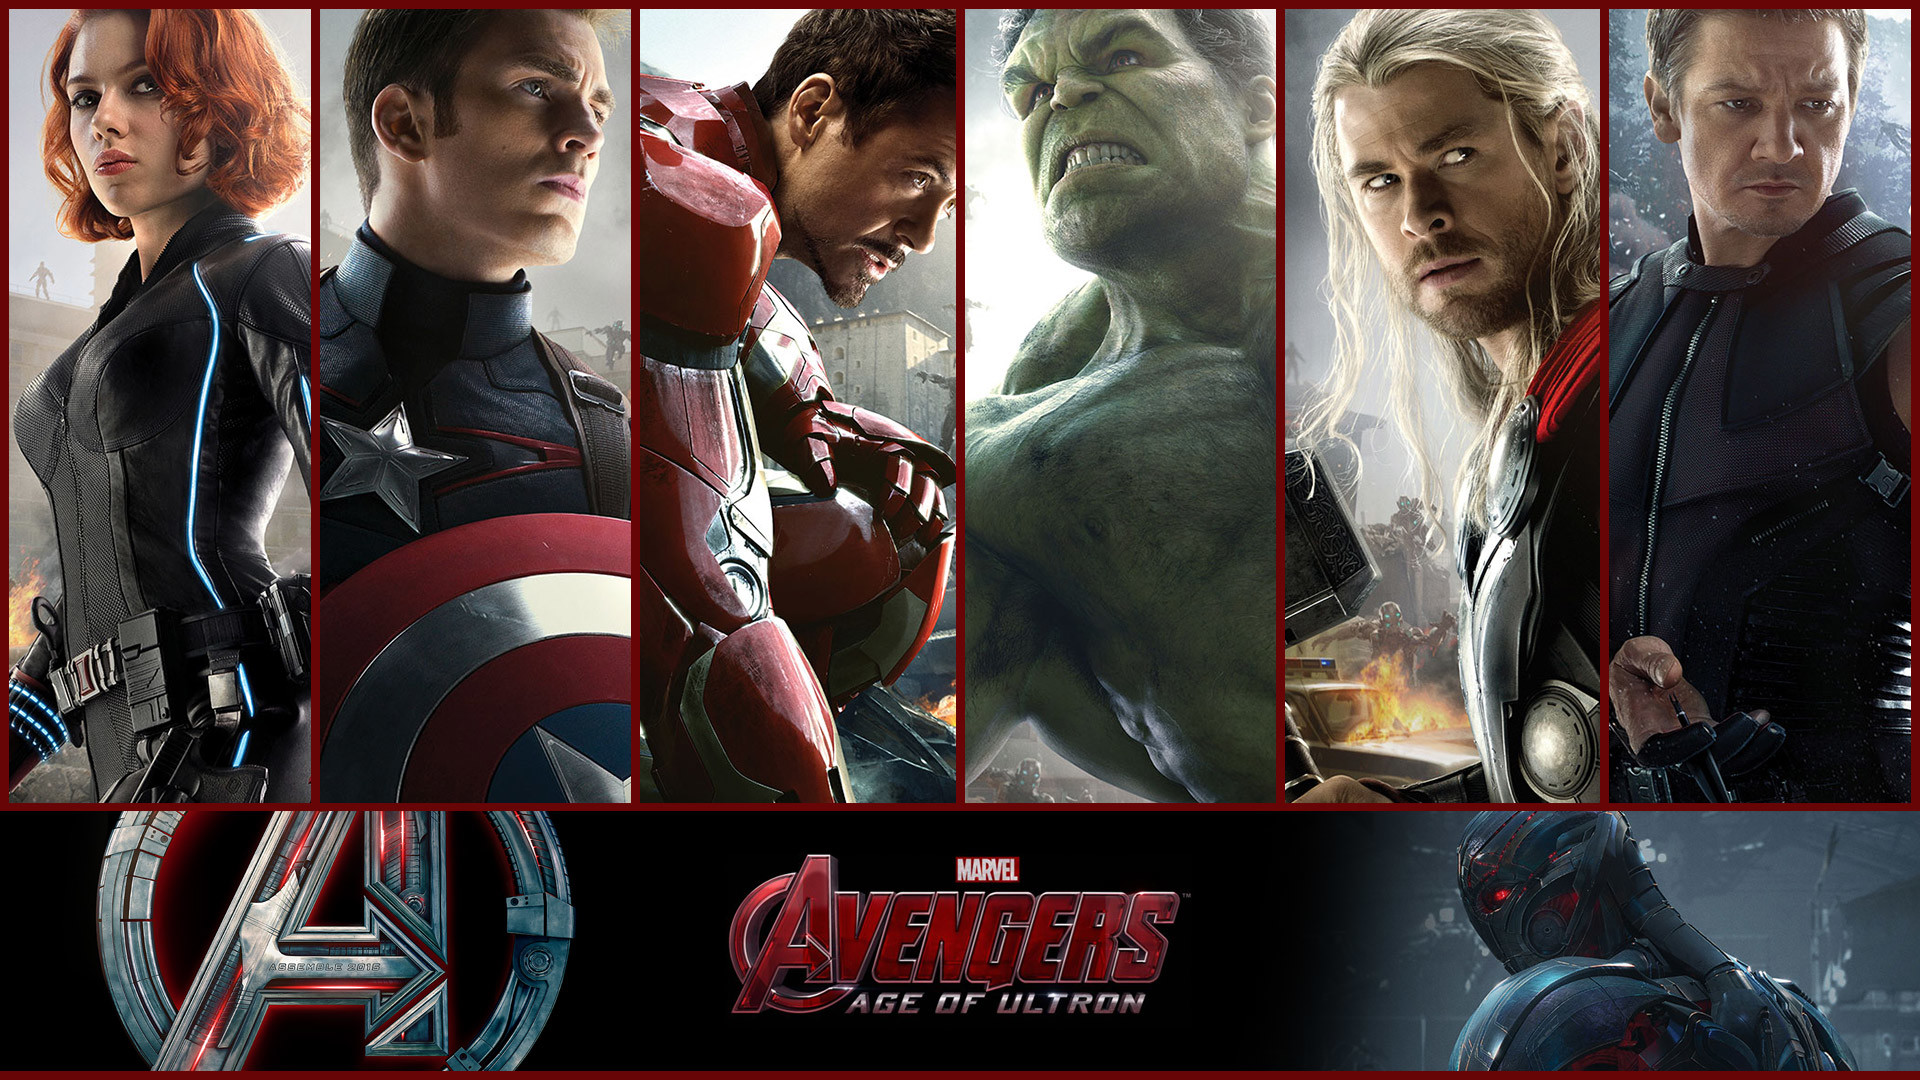 1920x1080 Avengers Age of Ultron 2015 Heroes Wallpaper HD